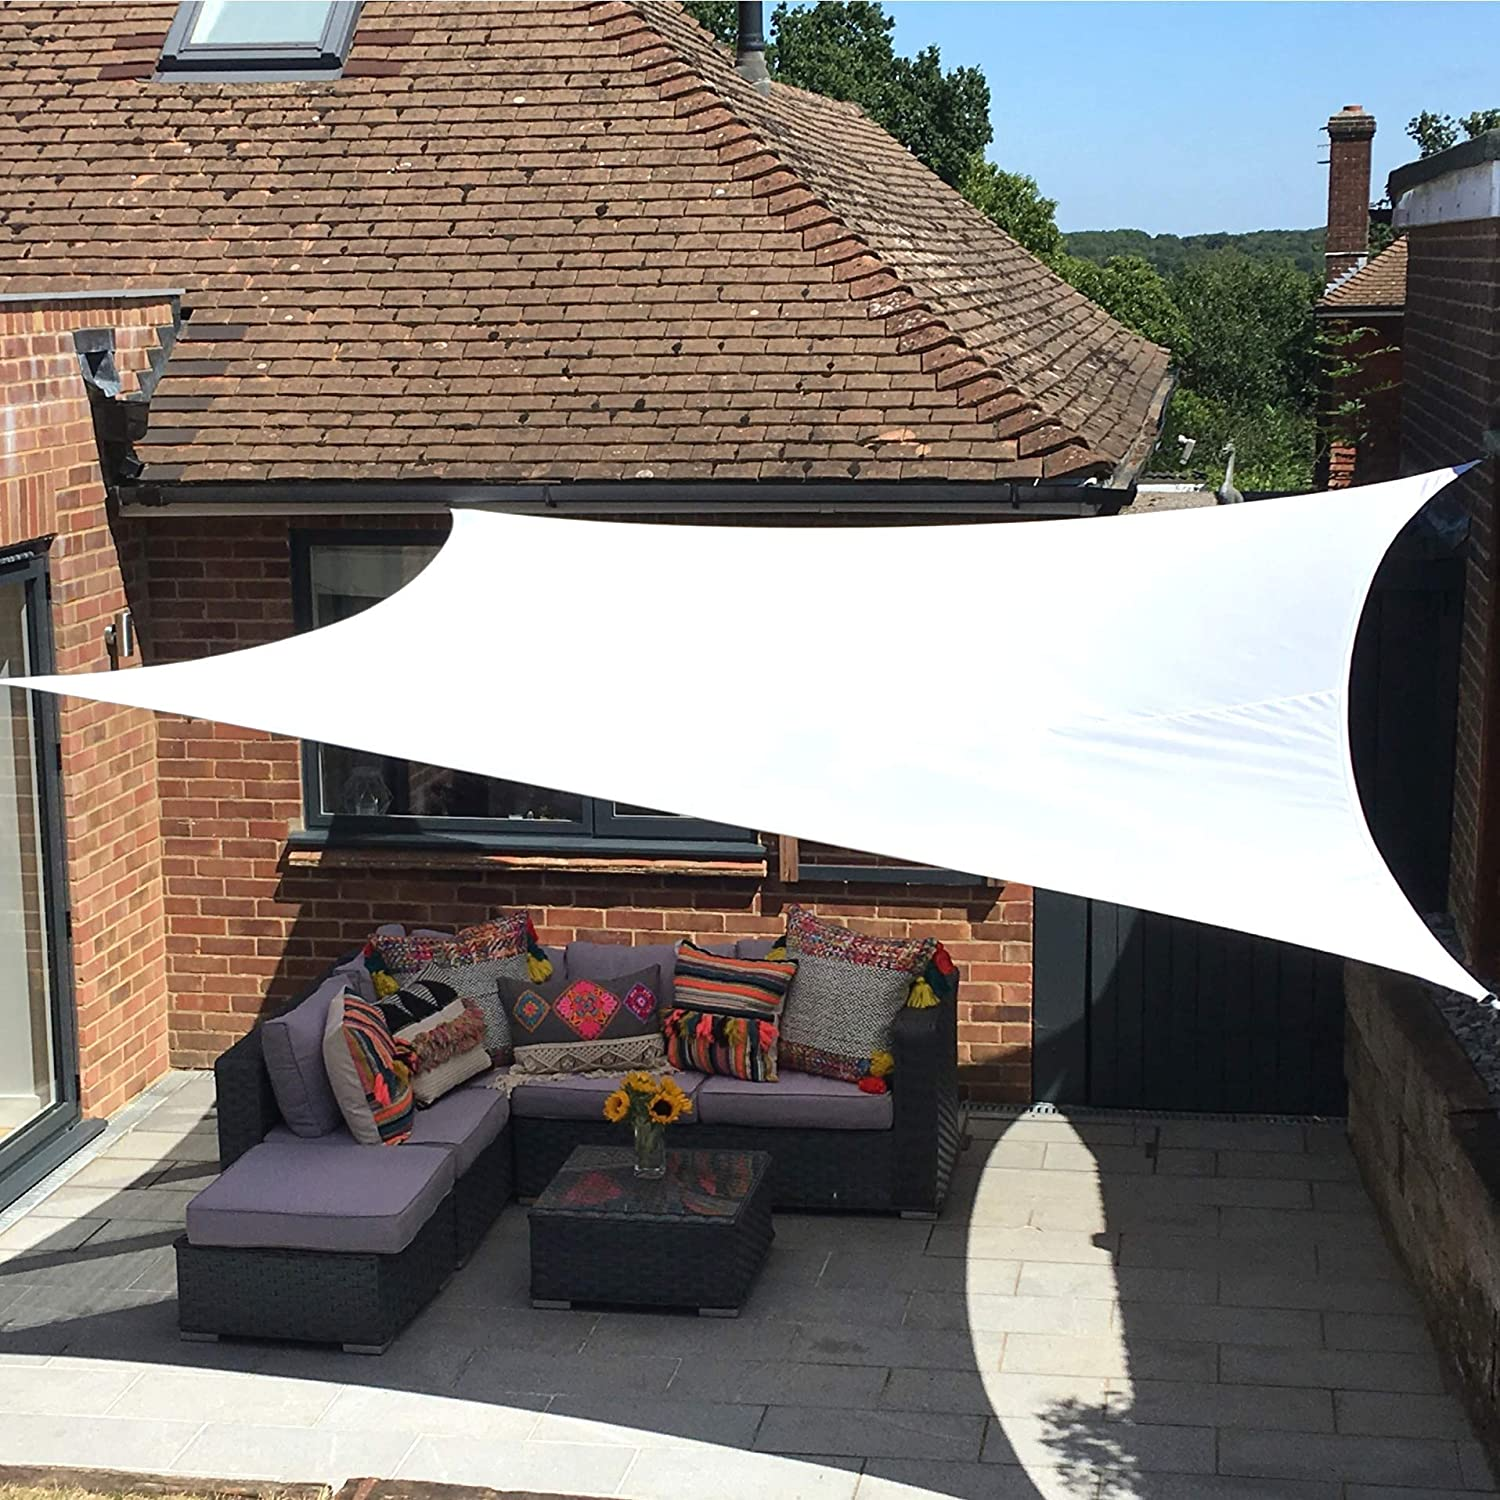 Toldo Vela Clara Shade Sail Blanco Impermeable Vela de Sombra para Jardin (Rectangle 4m x 5m, Blanco)